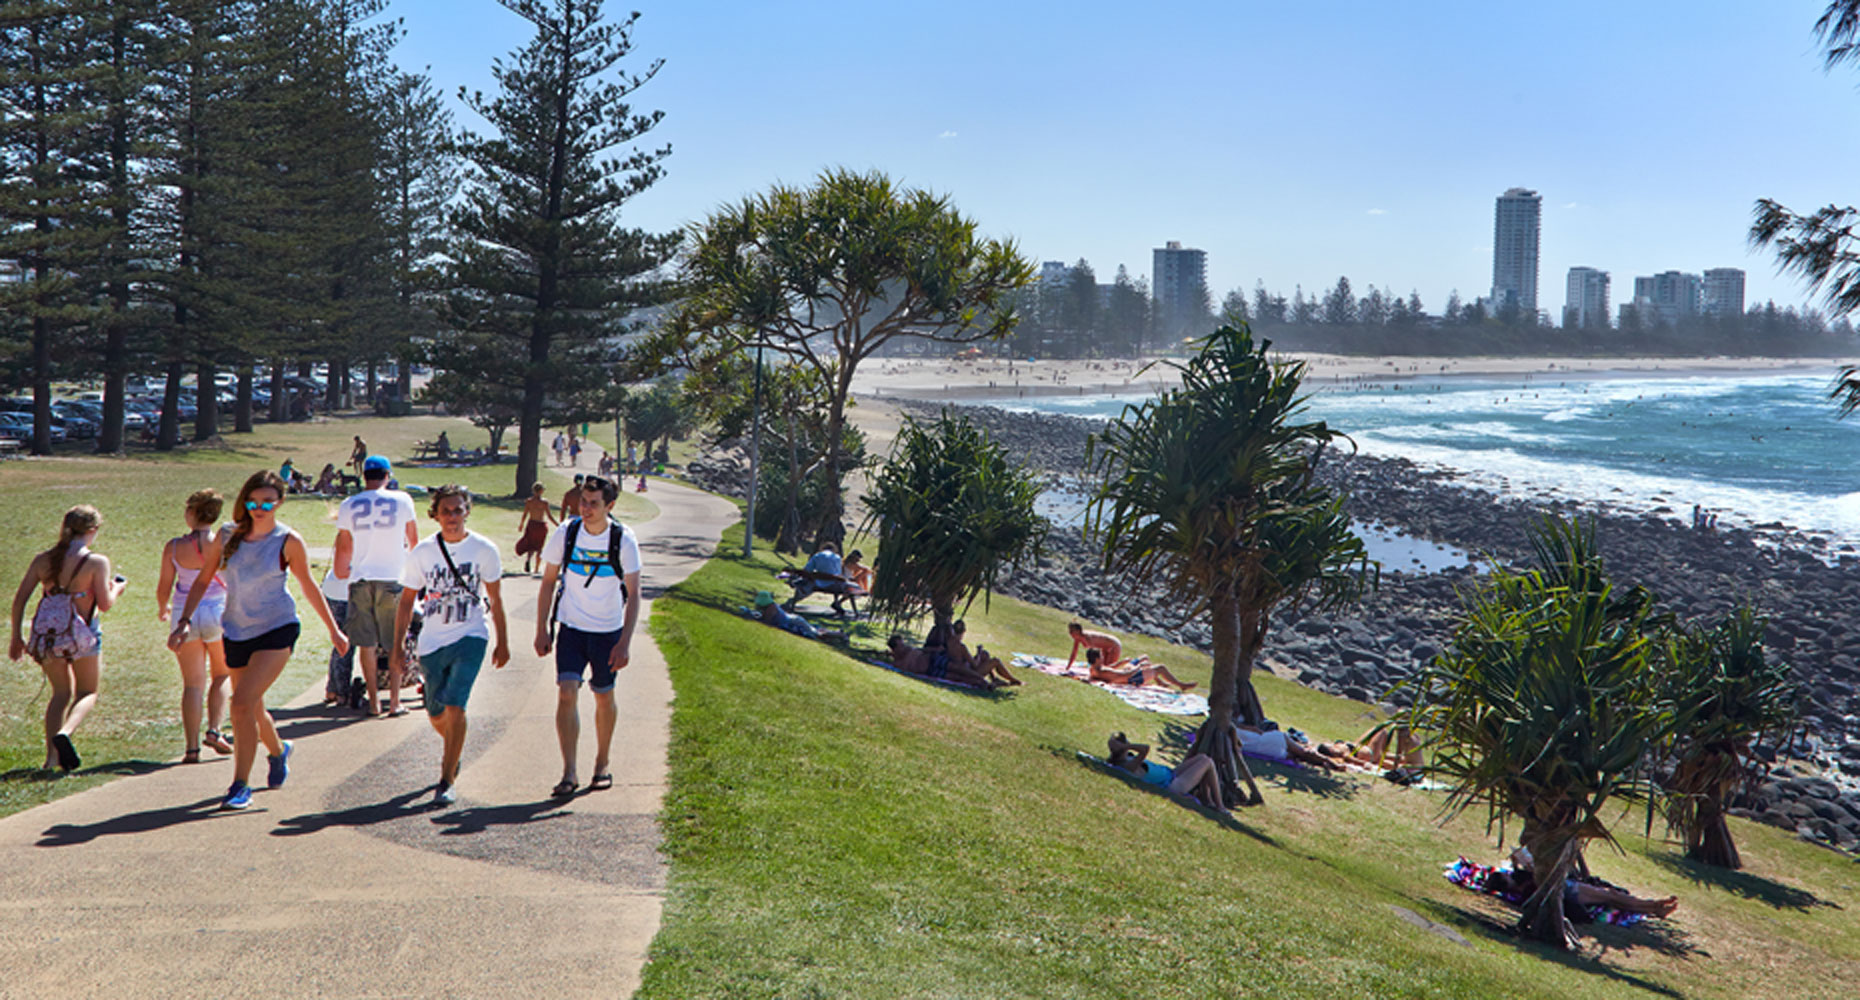 The Burleigh Heads lawn with the best view in town! Image credit: RealEstate.com.au